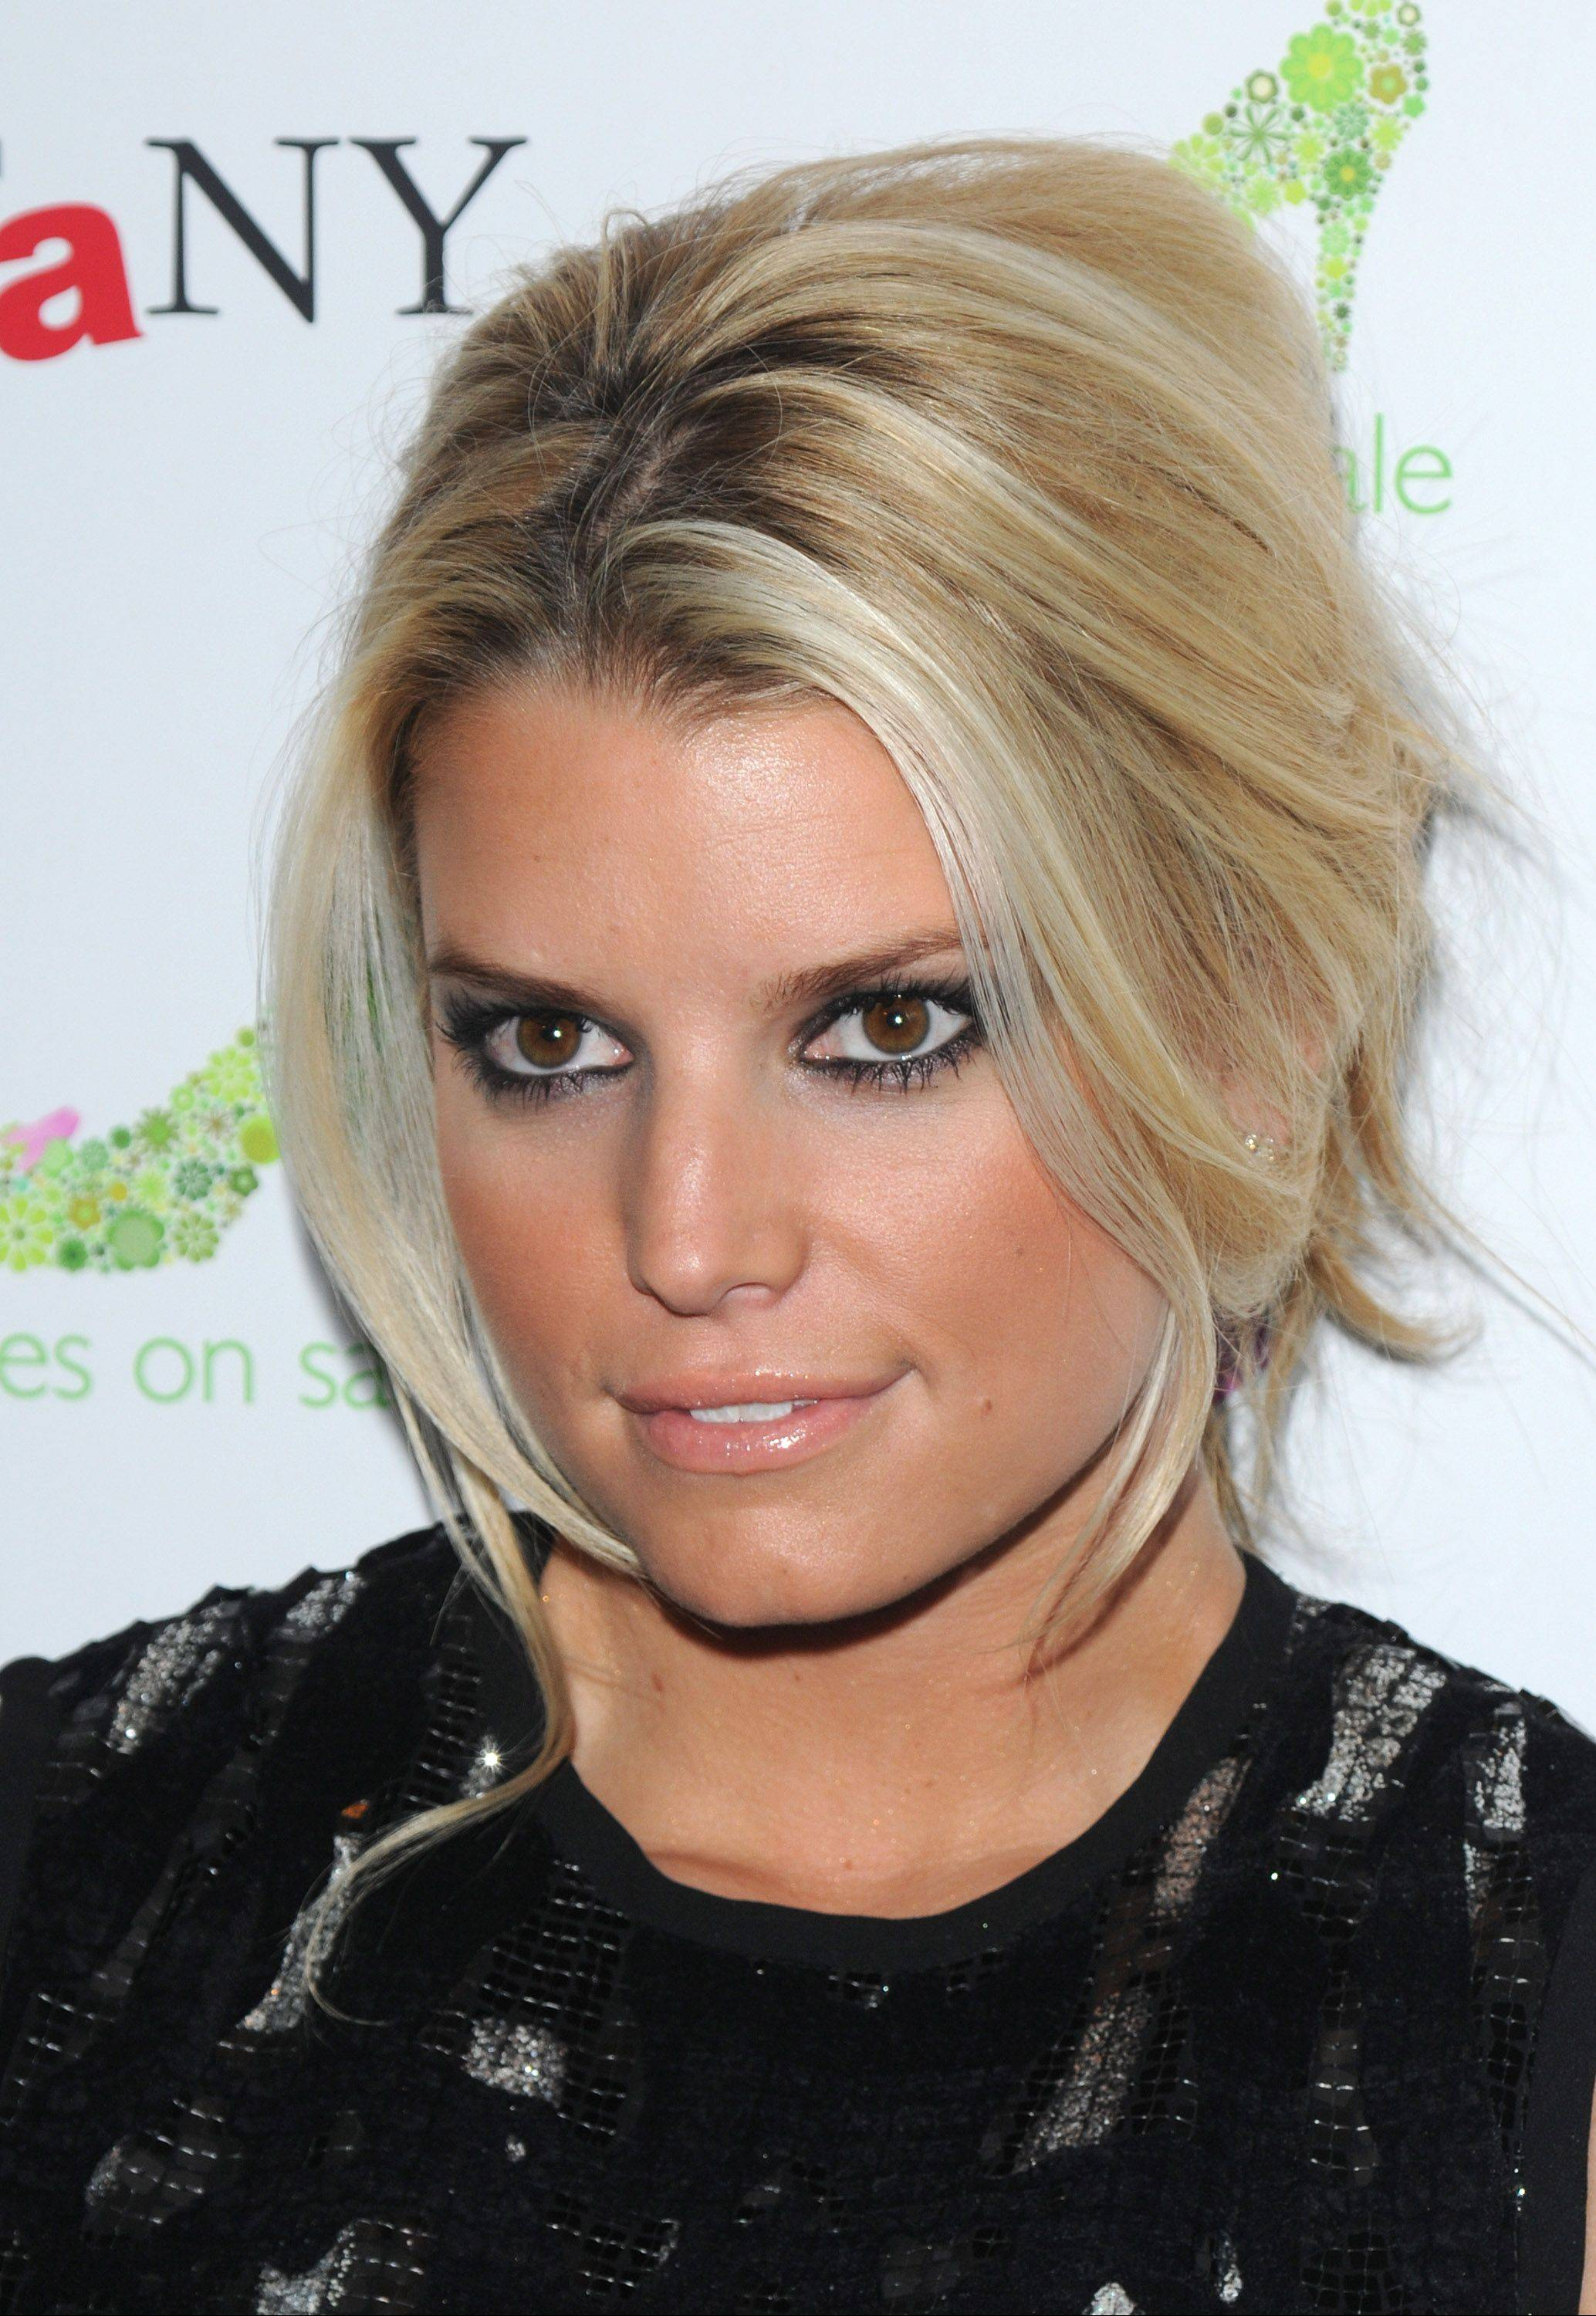 Jessica Simpson took to Twitter on Christmas Day to confirm rumors that she is pregnant again. She and fiance Eric Johnson have a daughter Maxwell who was born in May.